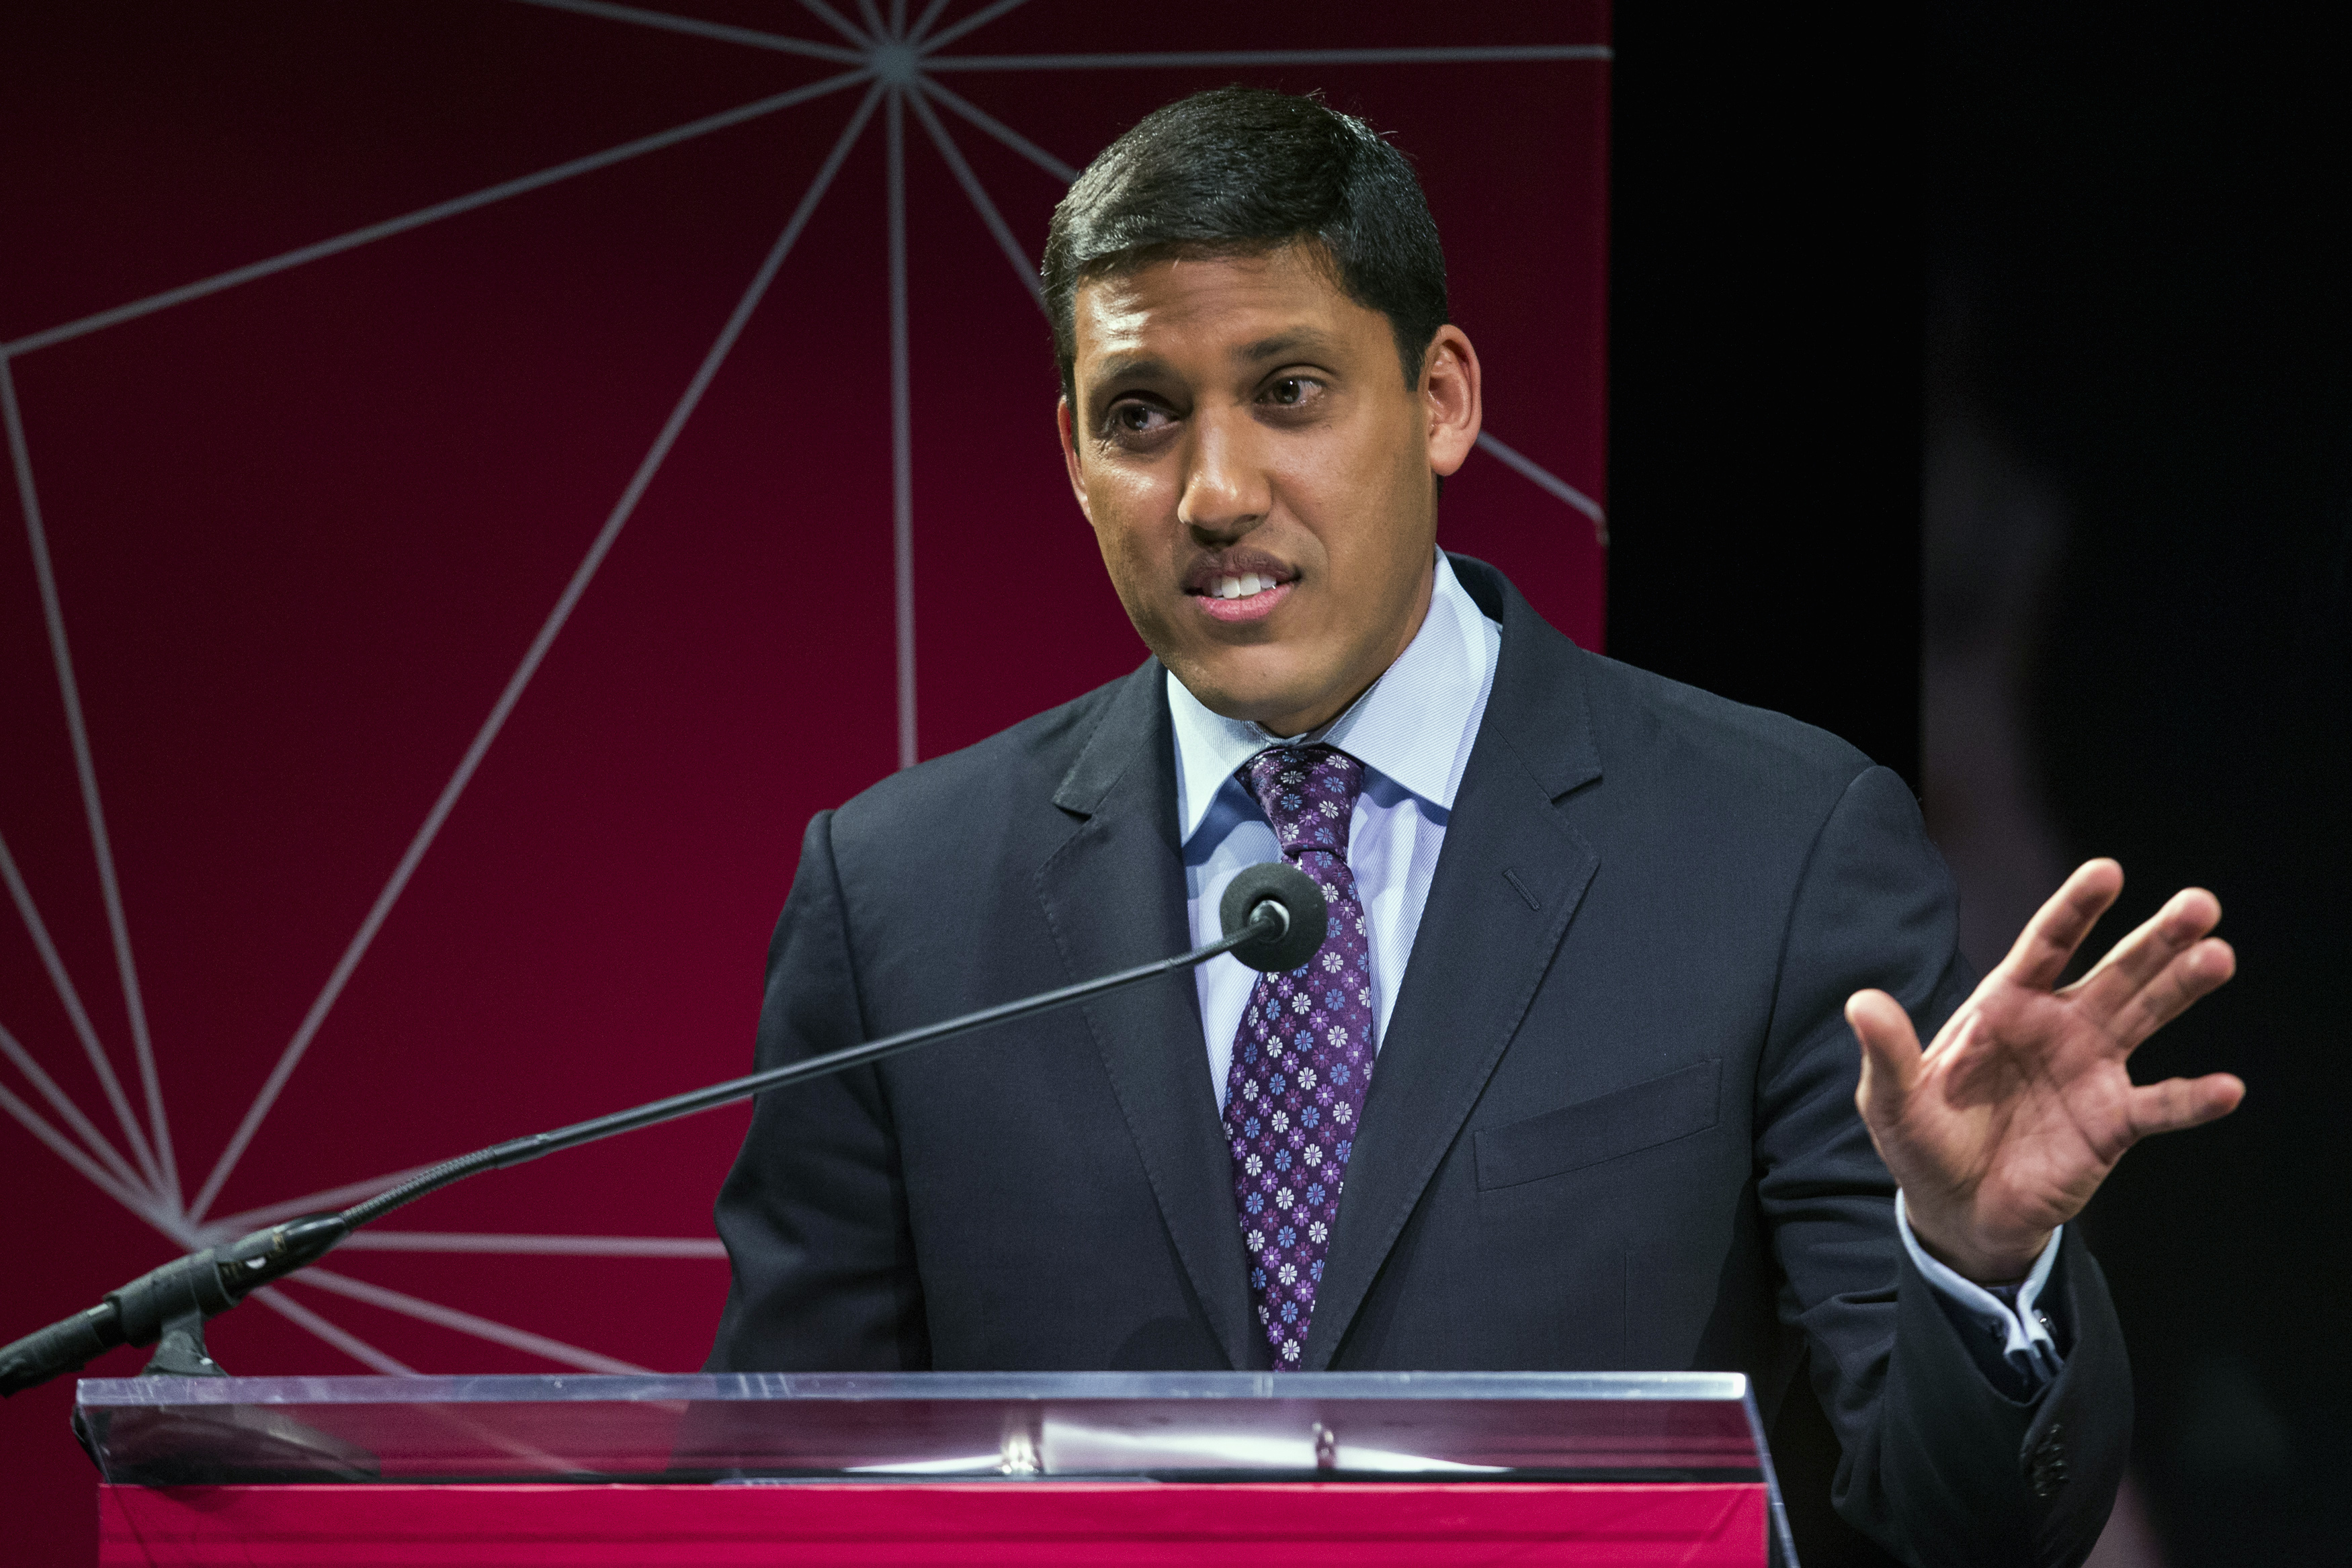 FILE PHOTO: U.S. Agency for International Development (USAID) Administrator Rajiv Shah gestures during the announcement of the U.S. Global Development Lab to help end extreme poverty by 2030, in New York April 3, 2014. REUTERS/Lucas Jackson